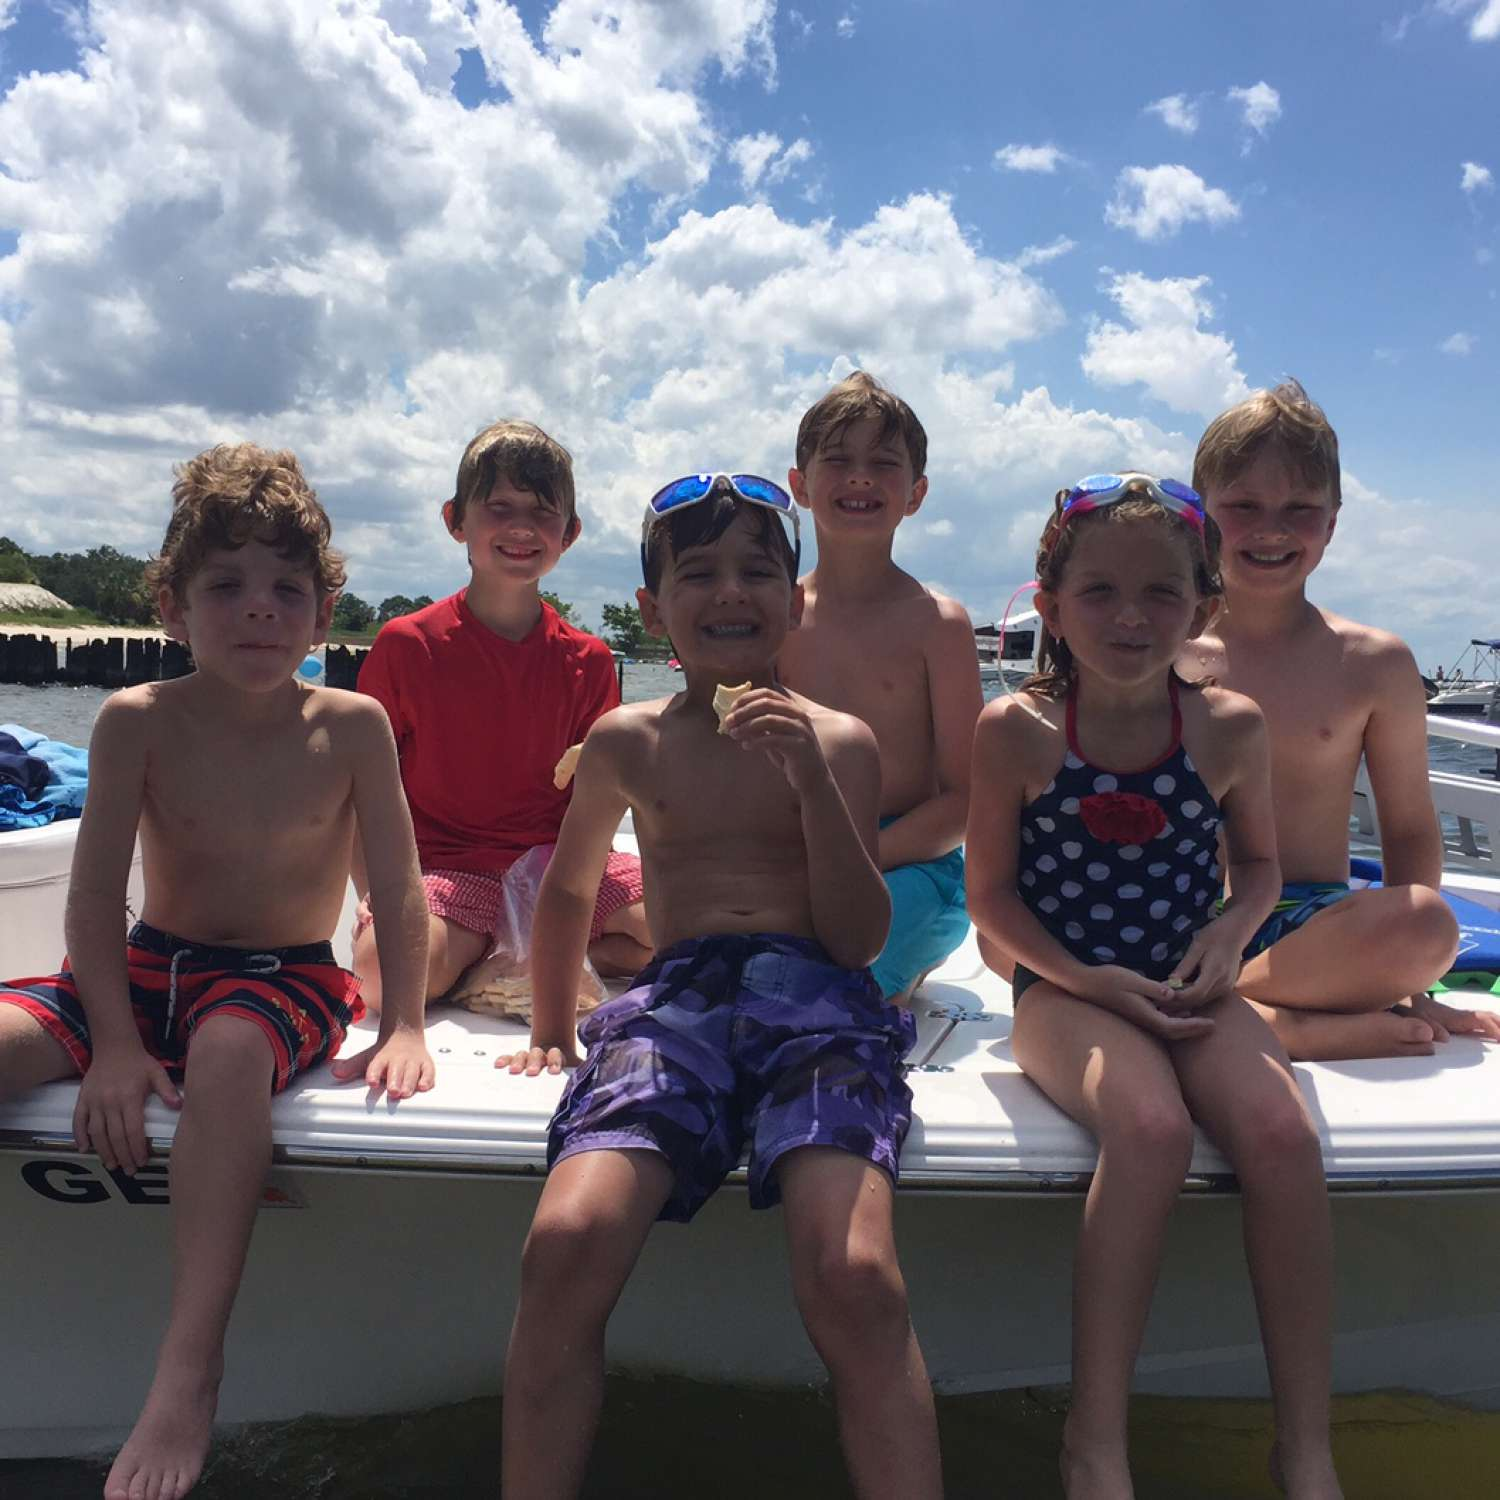 Title: Pontchartrain Beach July 4Th - On board their Sportsman Tournament 214 Bay Boat - Location: Metairie, Louisiana. Participating in the Photo Contest #SportsmanAugust2017